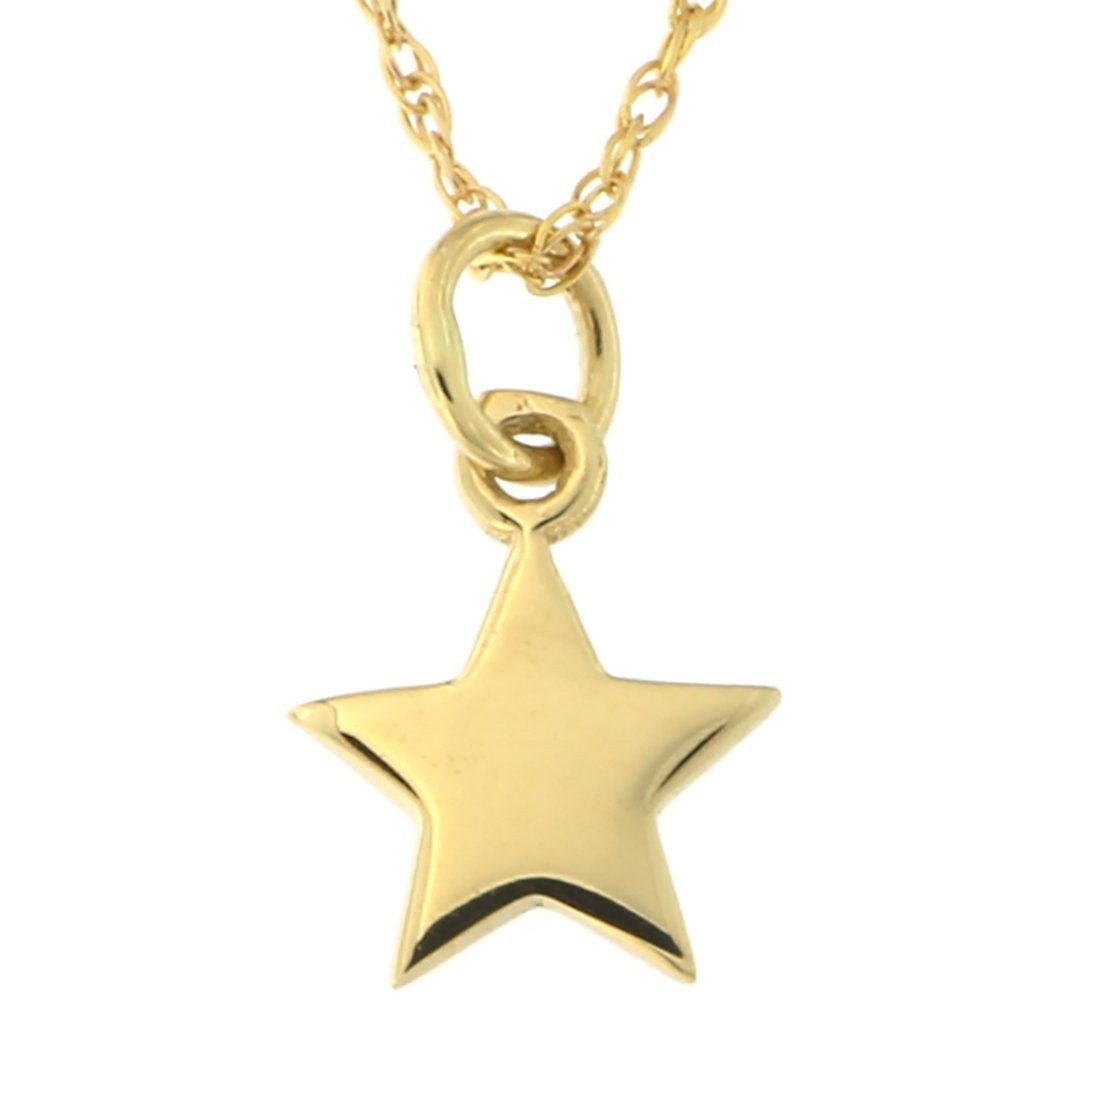 K yellow gold tiny star pendant necklace